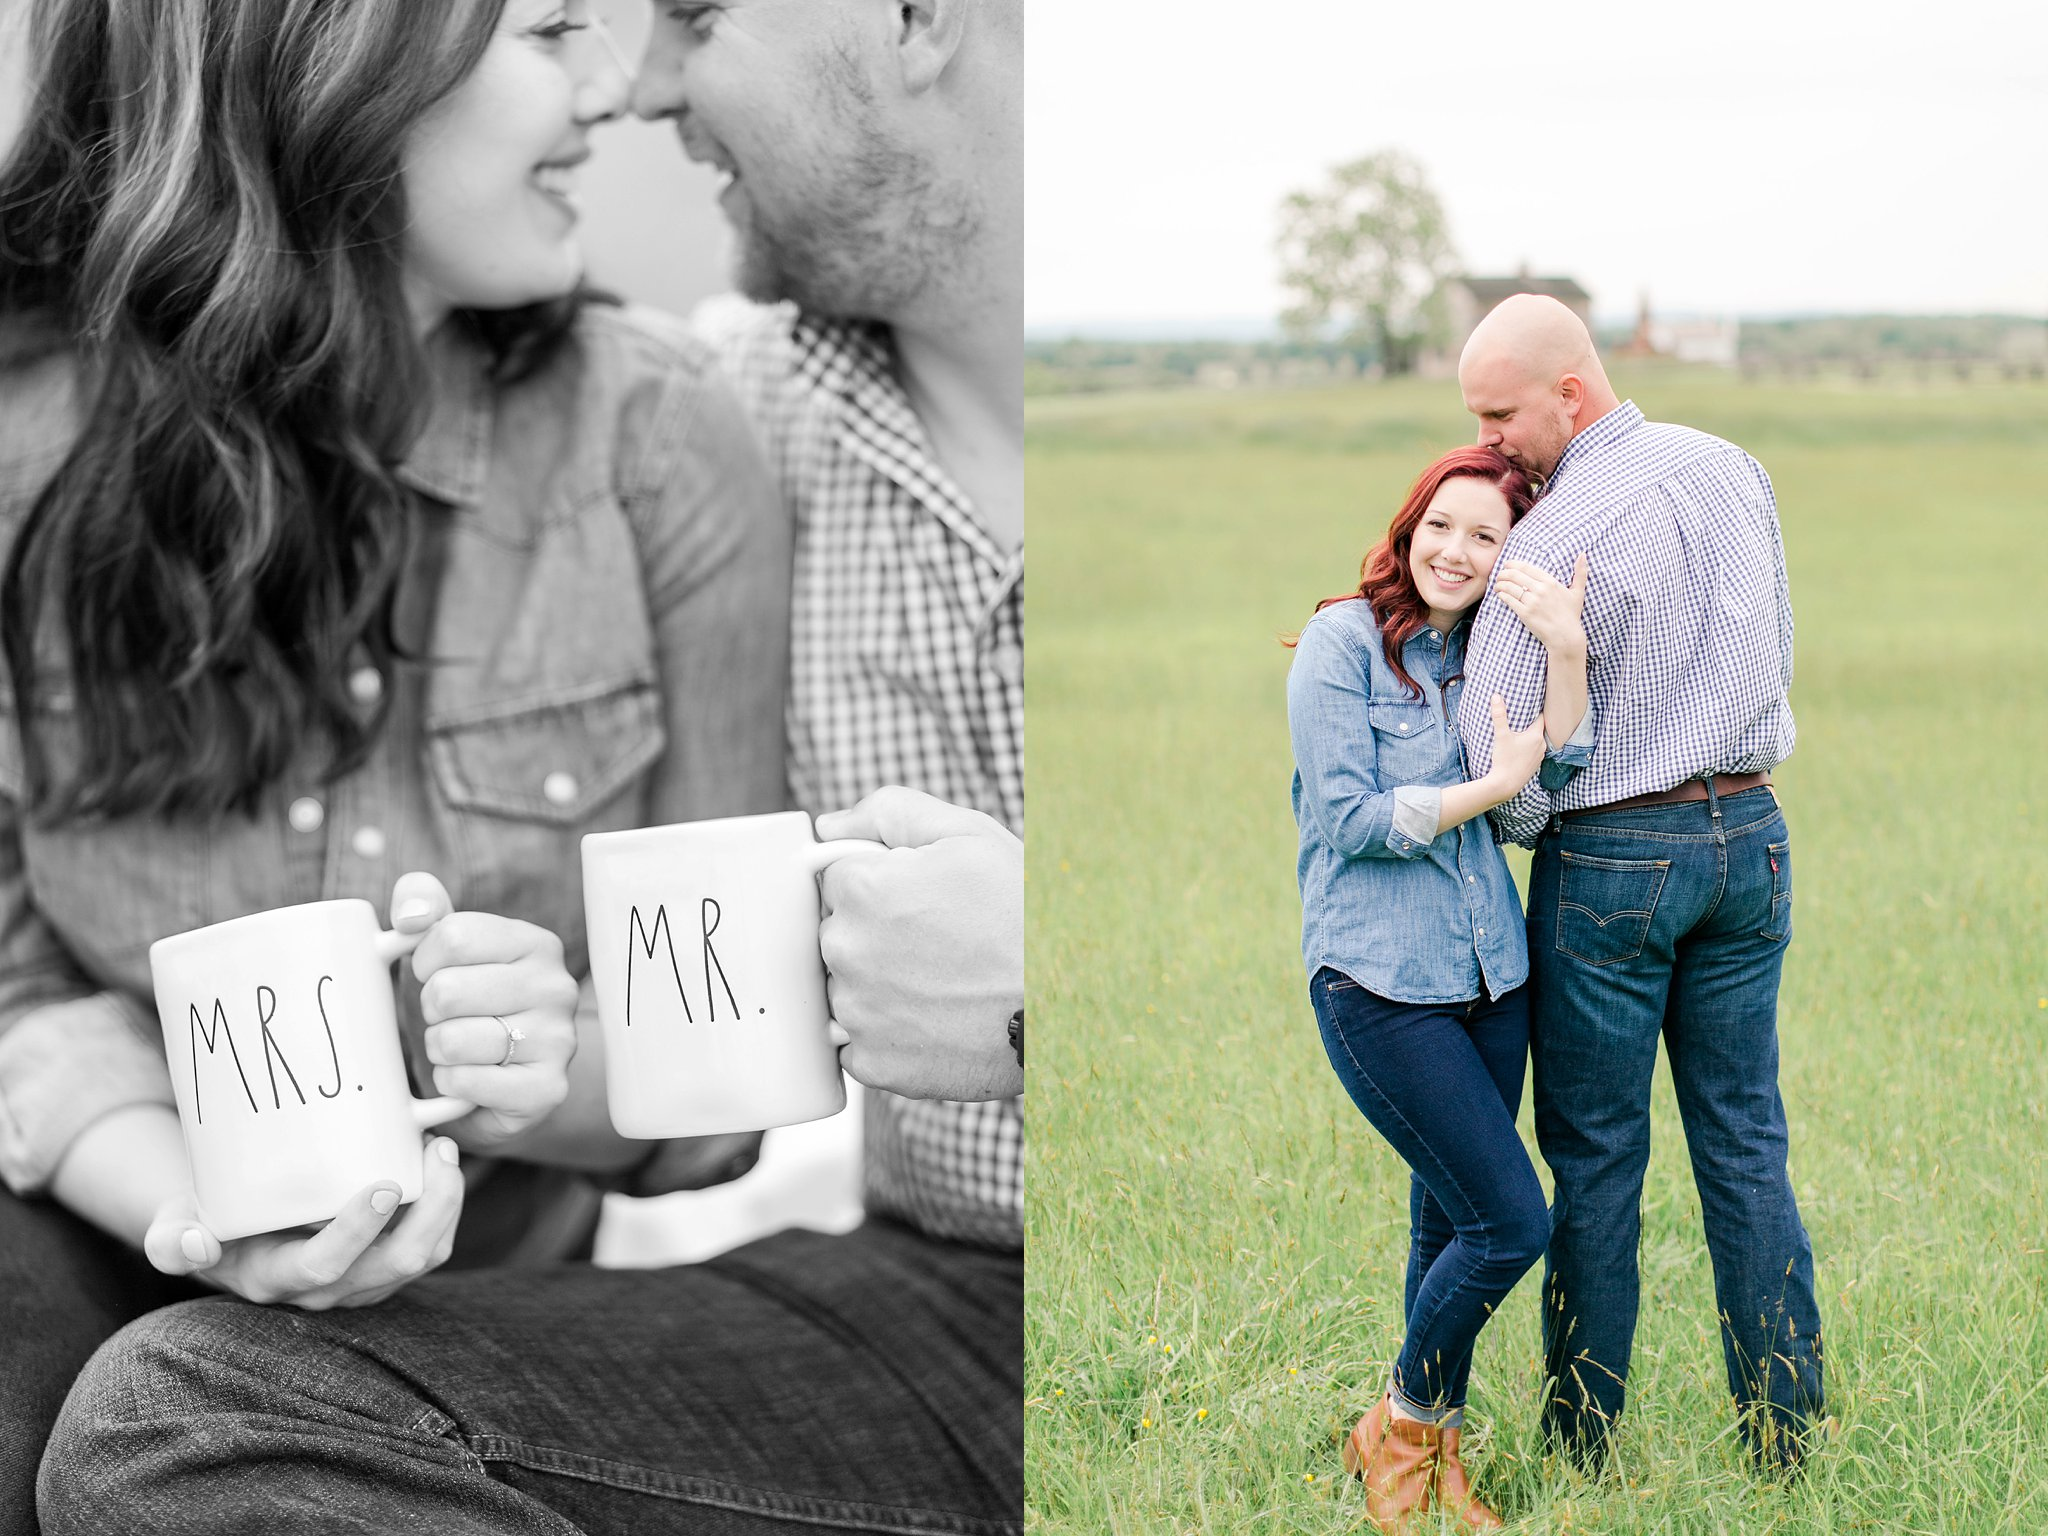 Old Town Manassas Battlefield Engagement Photos Virginia Wedding Photographer Jessica & Jason-138.jpg